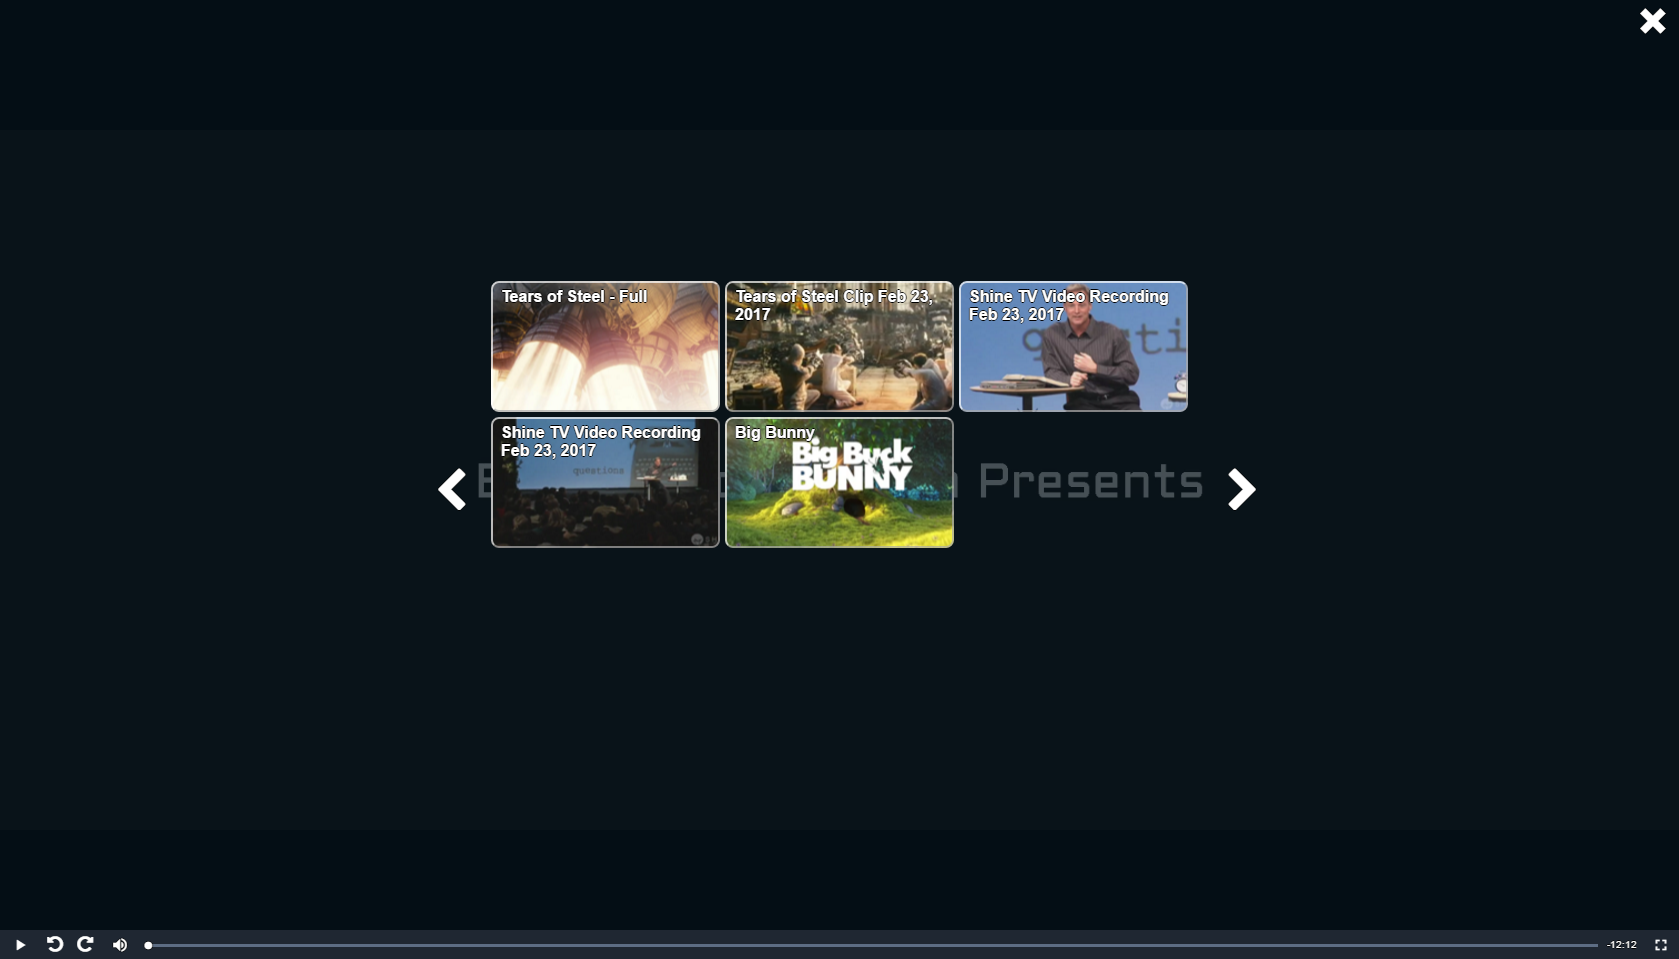 SGplayer video grid layout